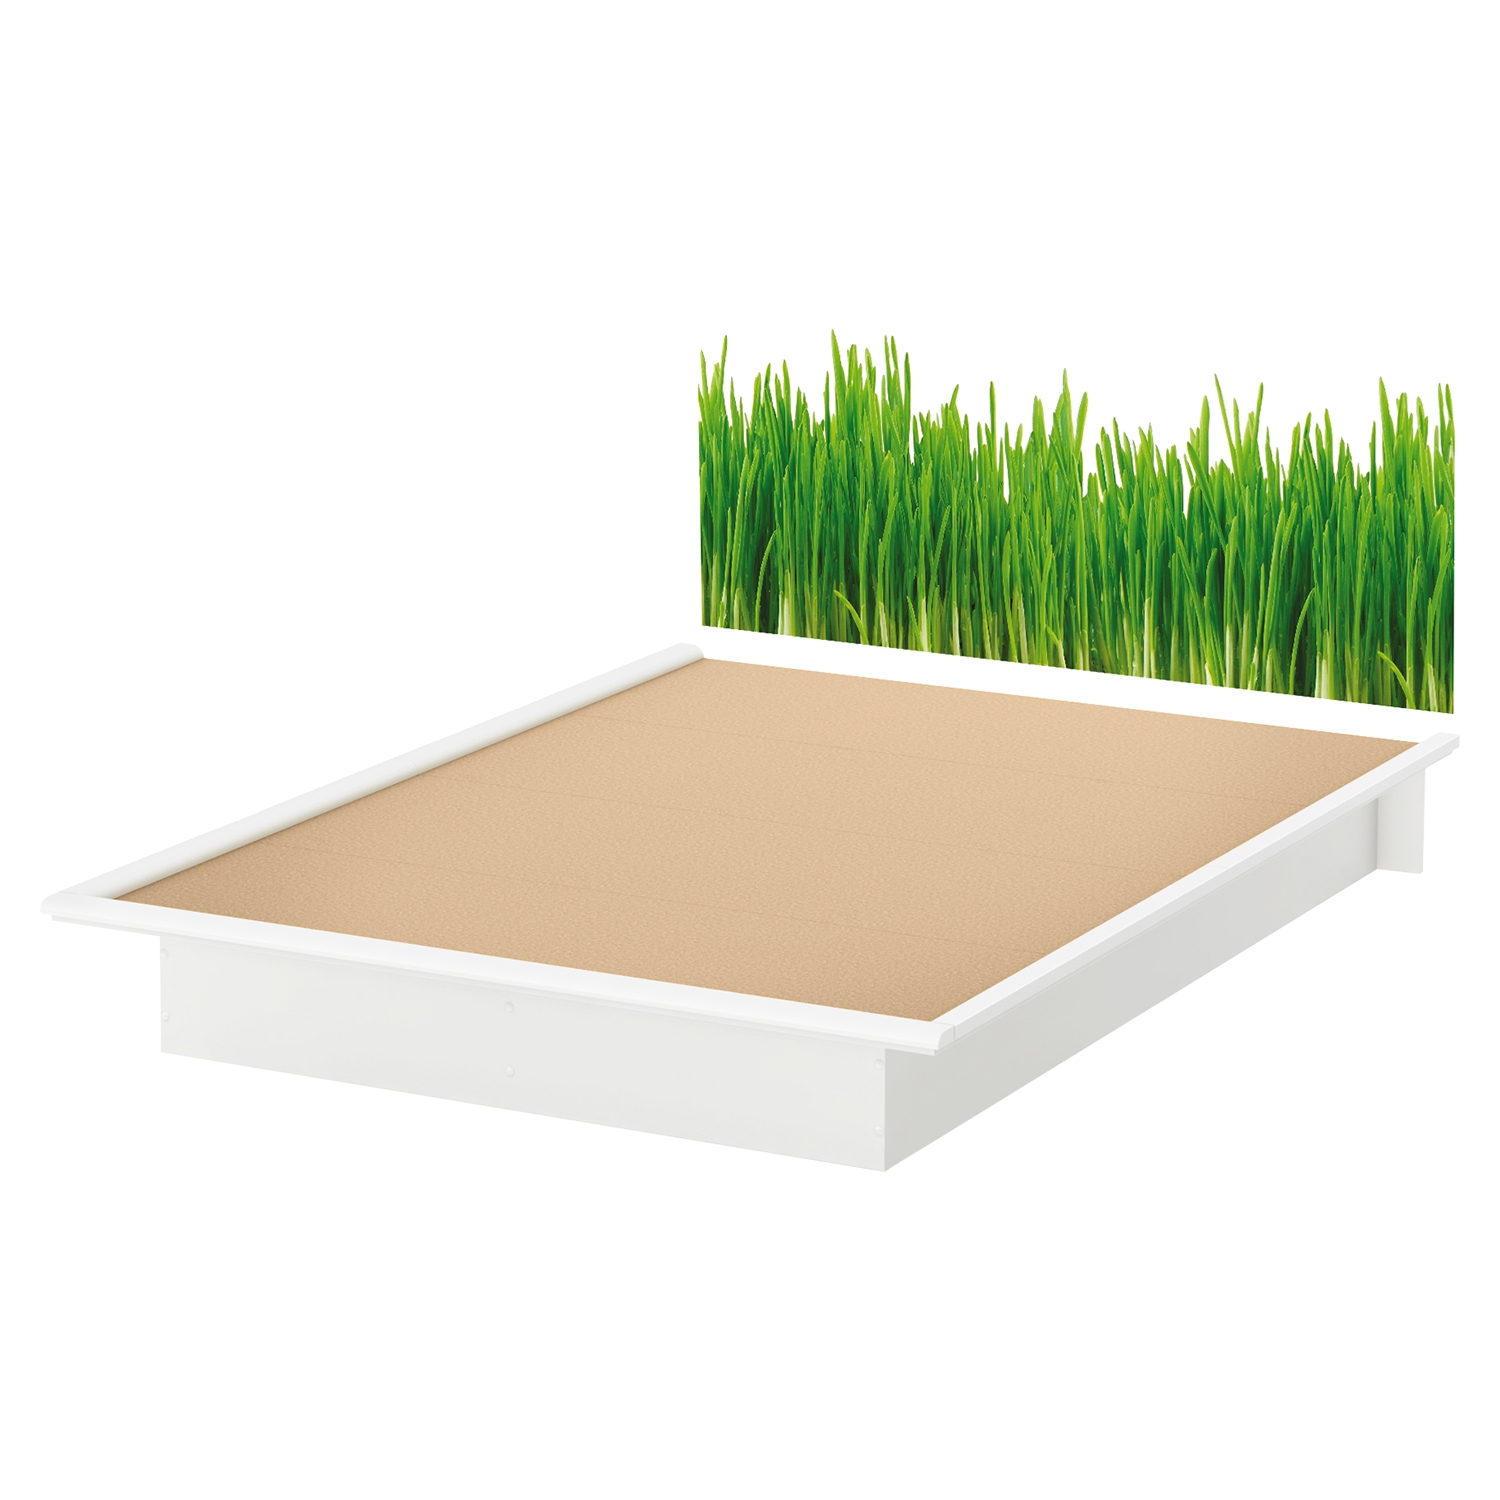 Step One Queen Platform Bed - Grass Decal, Pure White - SS-8050098K